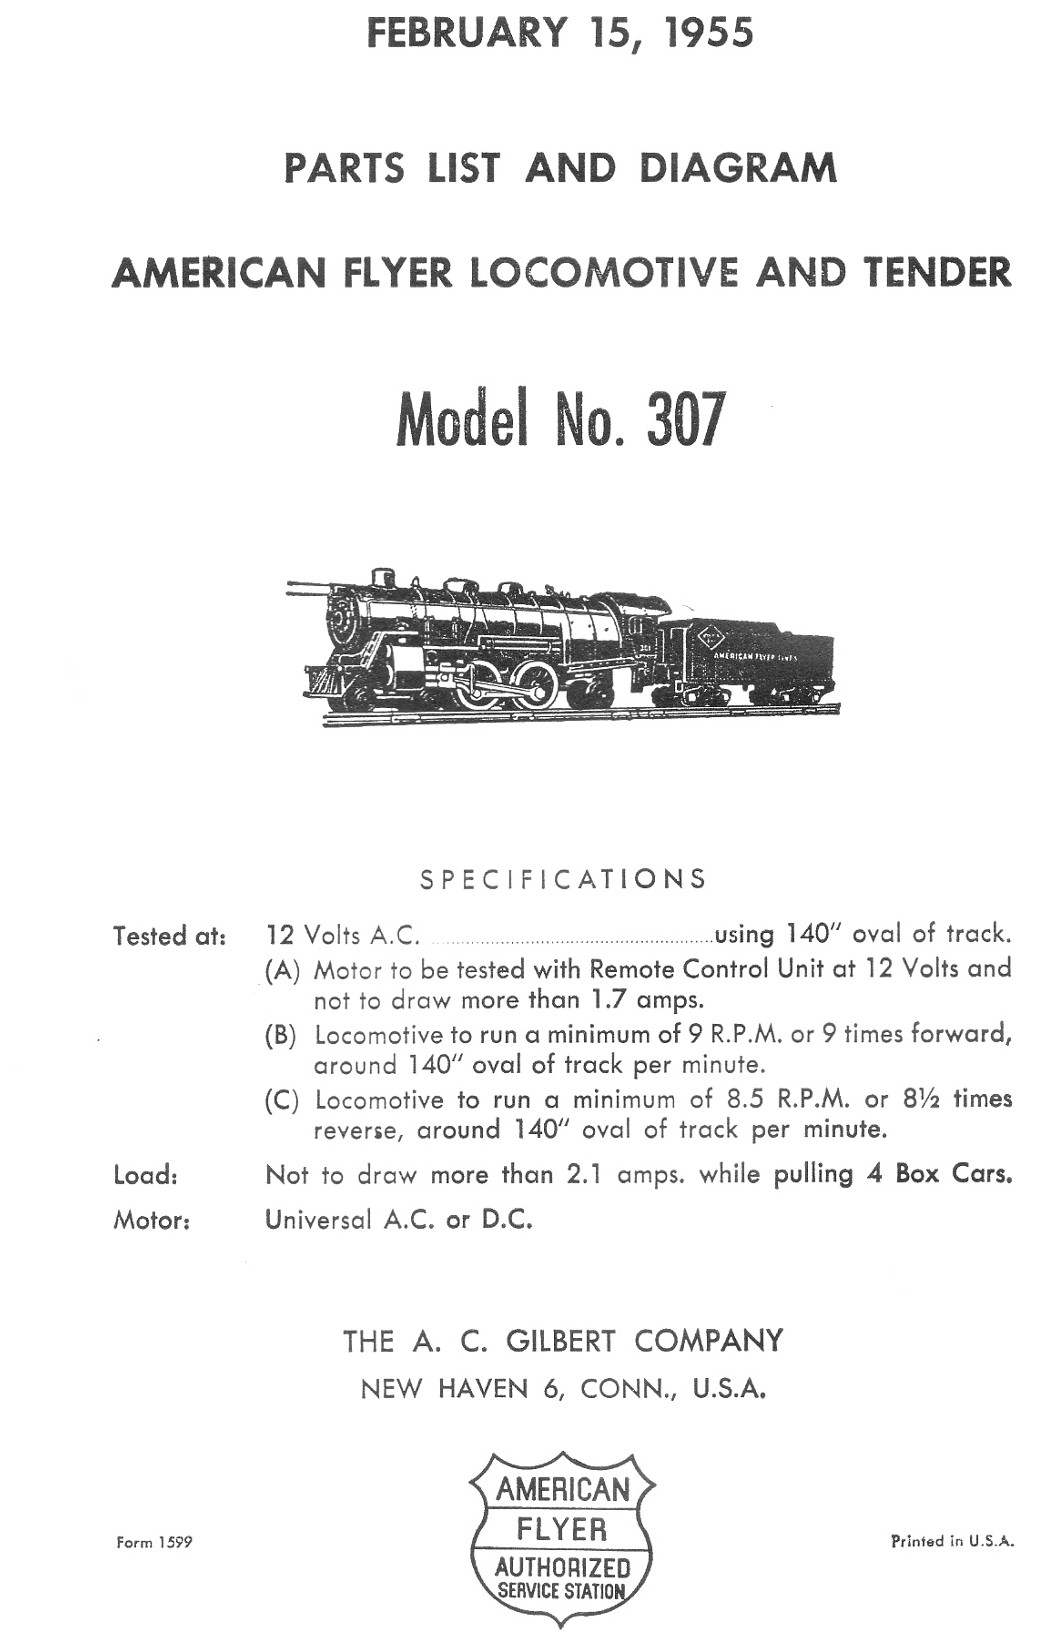 American Flyer Locomotive & Tender 307 Parts List and Diagram - Page 1